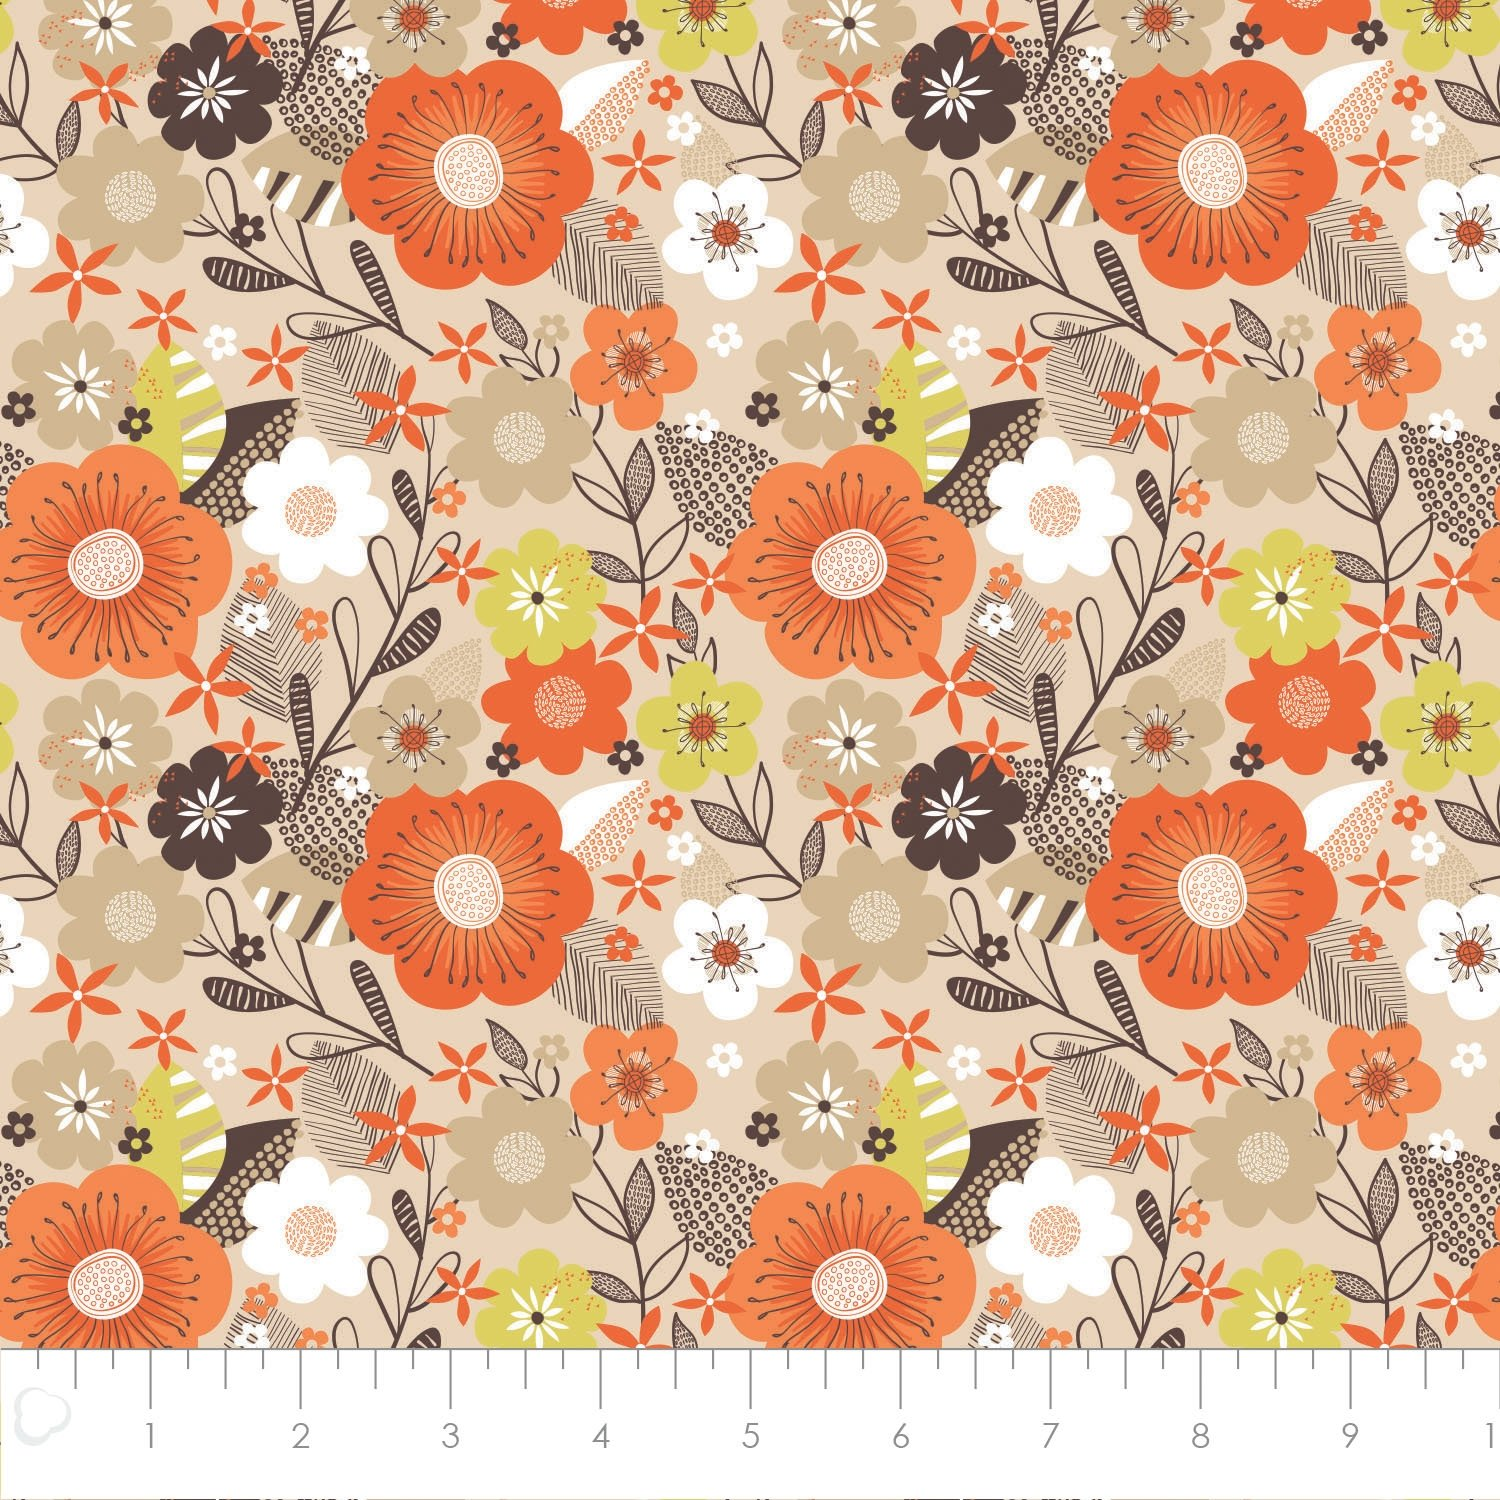 Camelot Fabrics Flower Market White Blooms 91180101 01